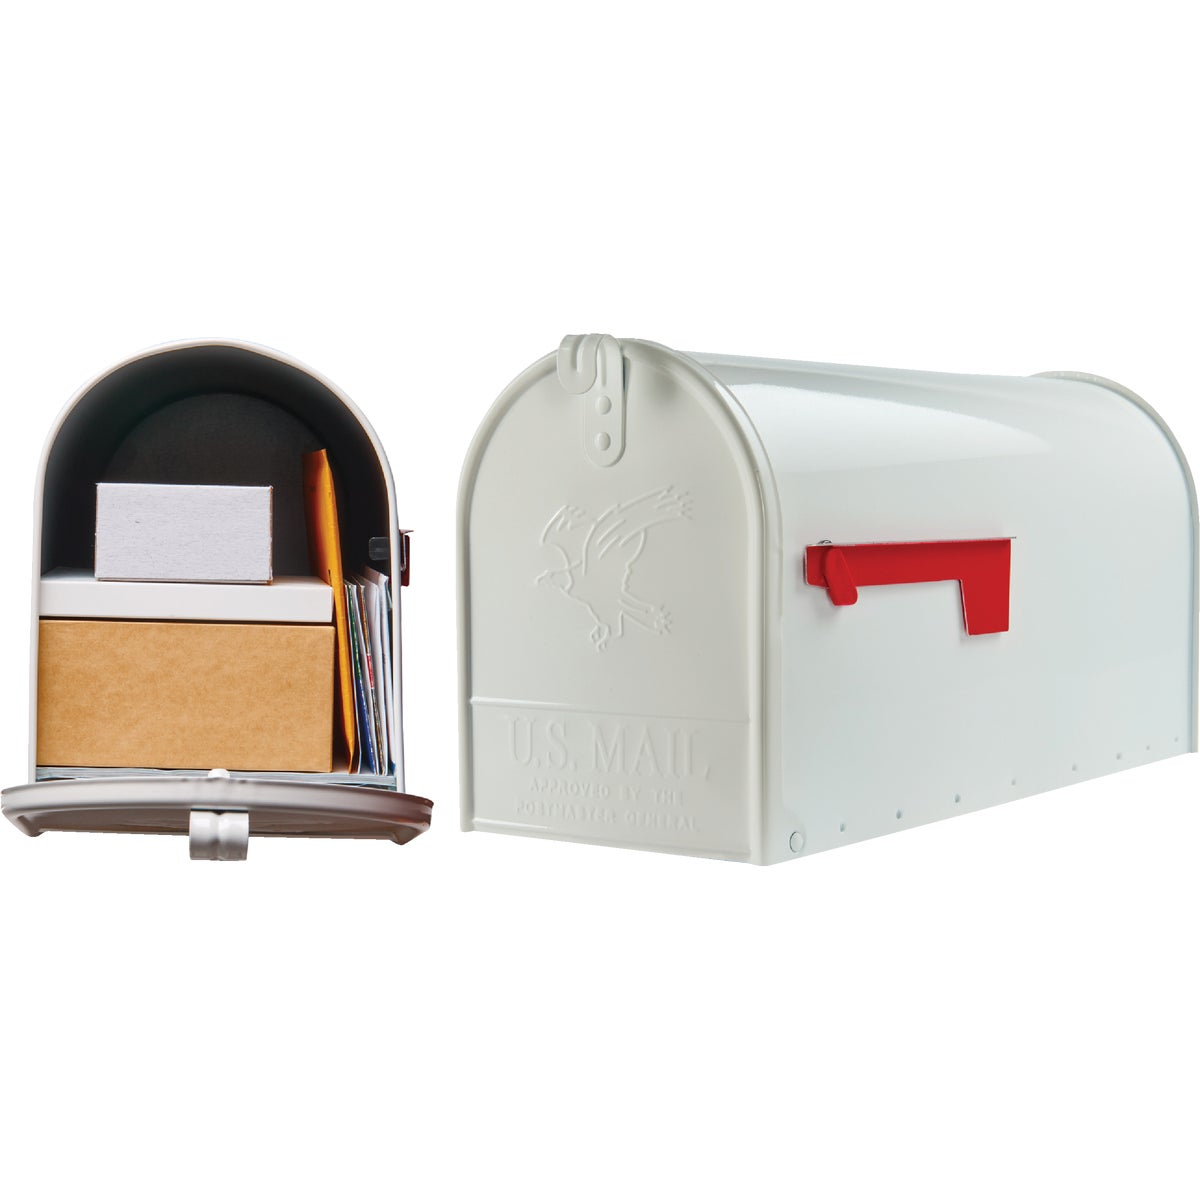 WHITE T2 MAILBOX - E16W#T2 by Solar Group